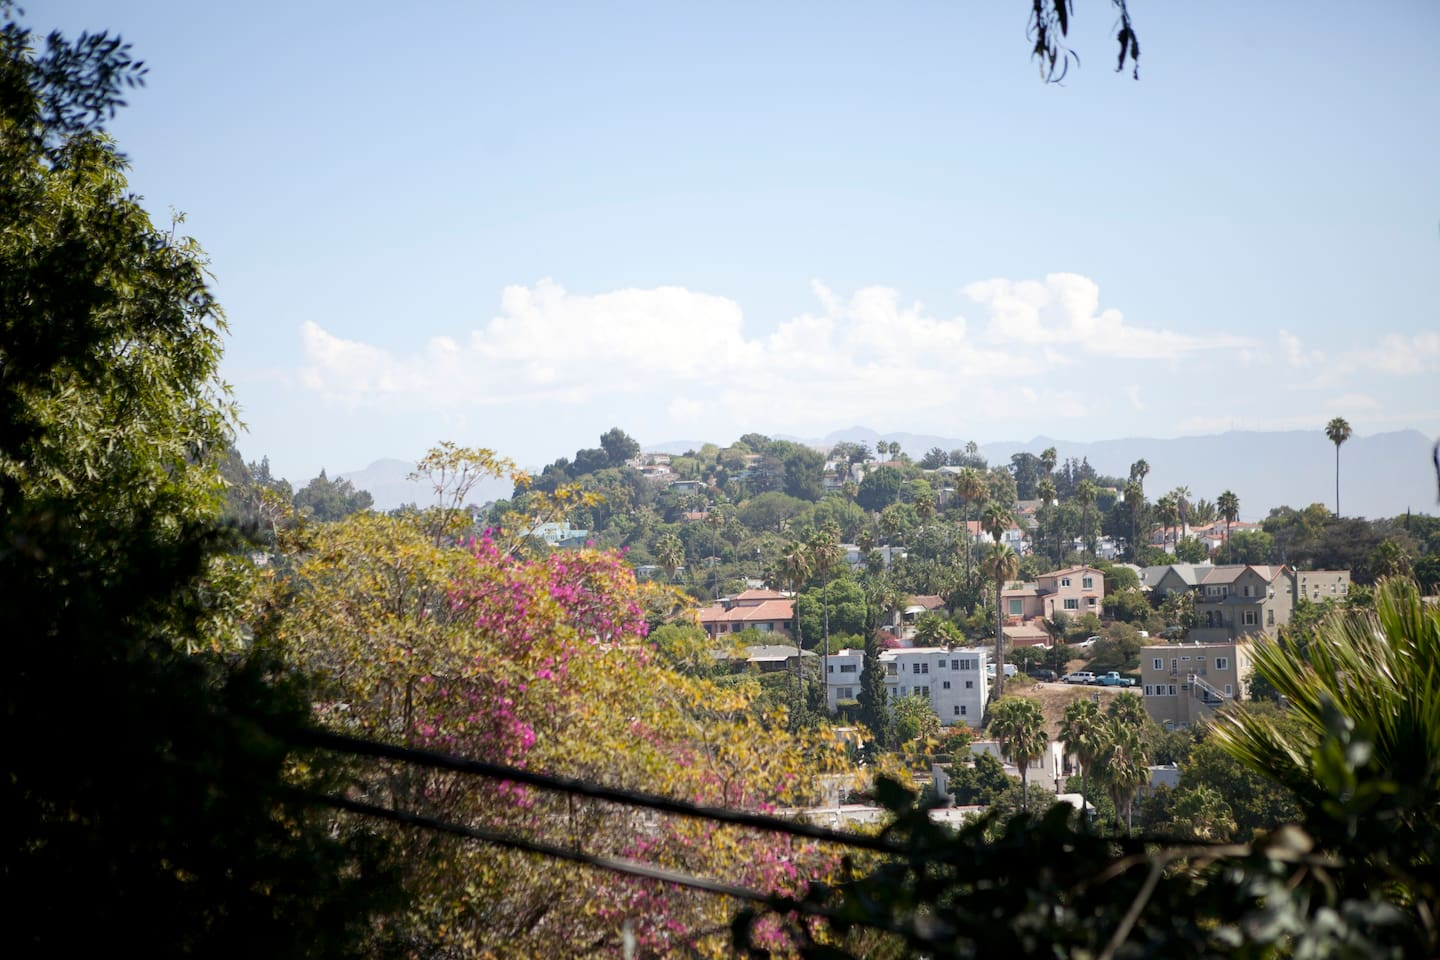 view of Silverlake hills